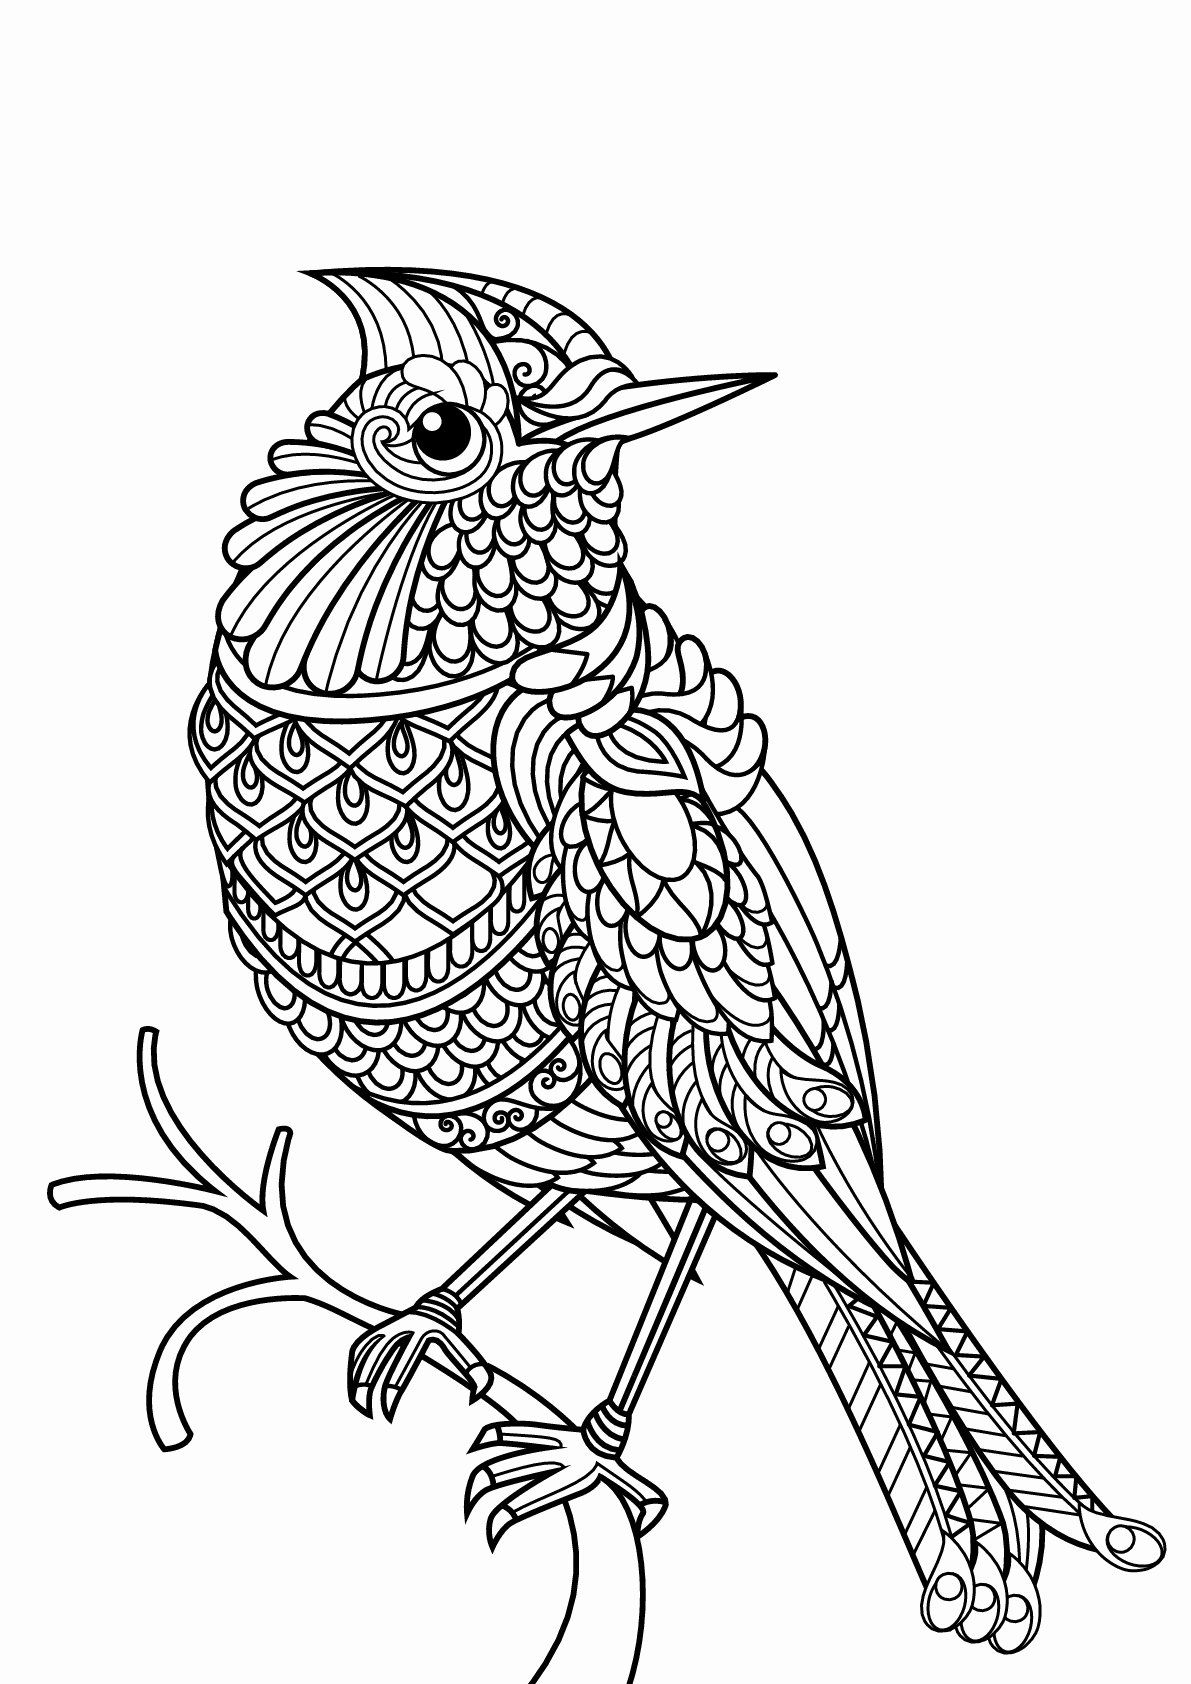 Coloring Pic Of Animals Luxury Birds Free To Color For Children Birds Kids Coloring Pages Bird Coloring Pages Farm Animal Coloring Pages Mandala Coloring Pages [ 1684 x 1191 Pixel ]